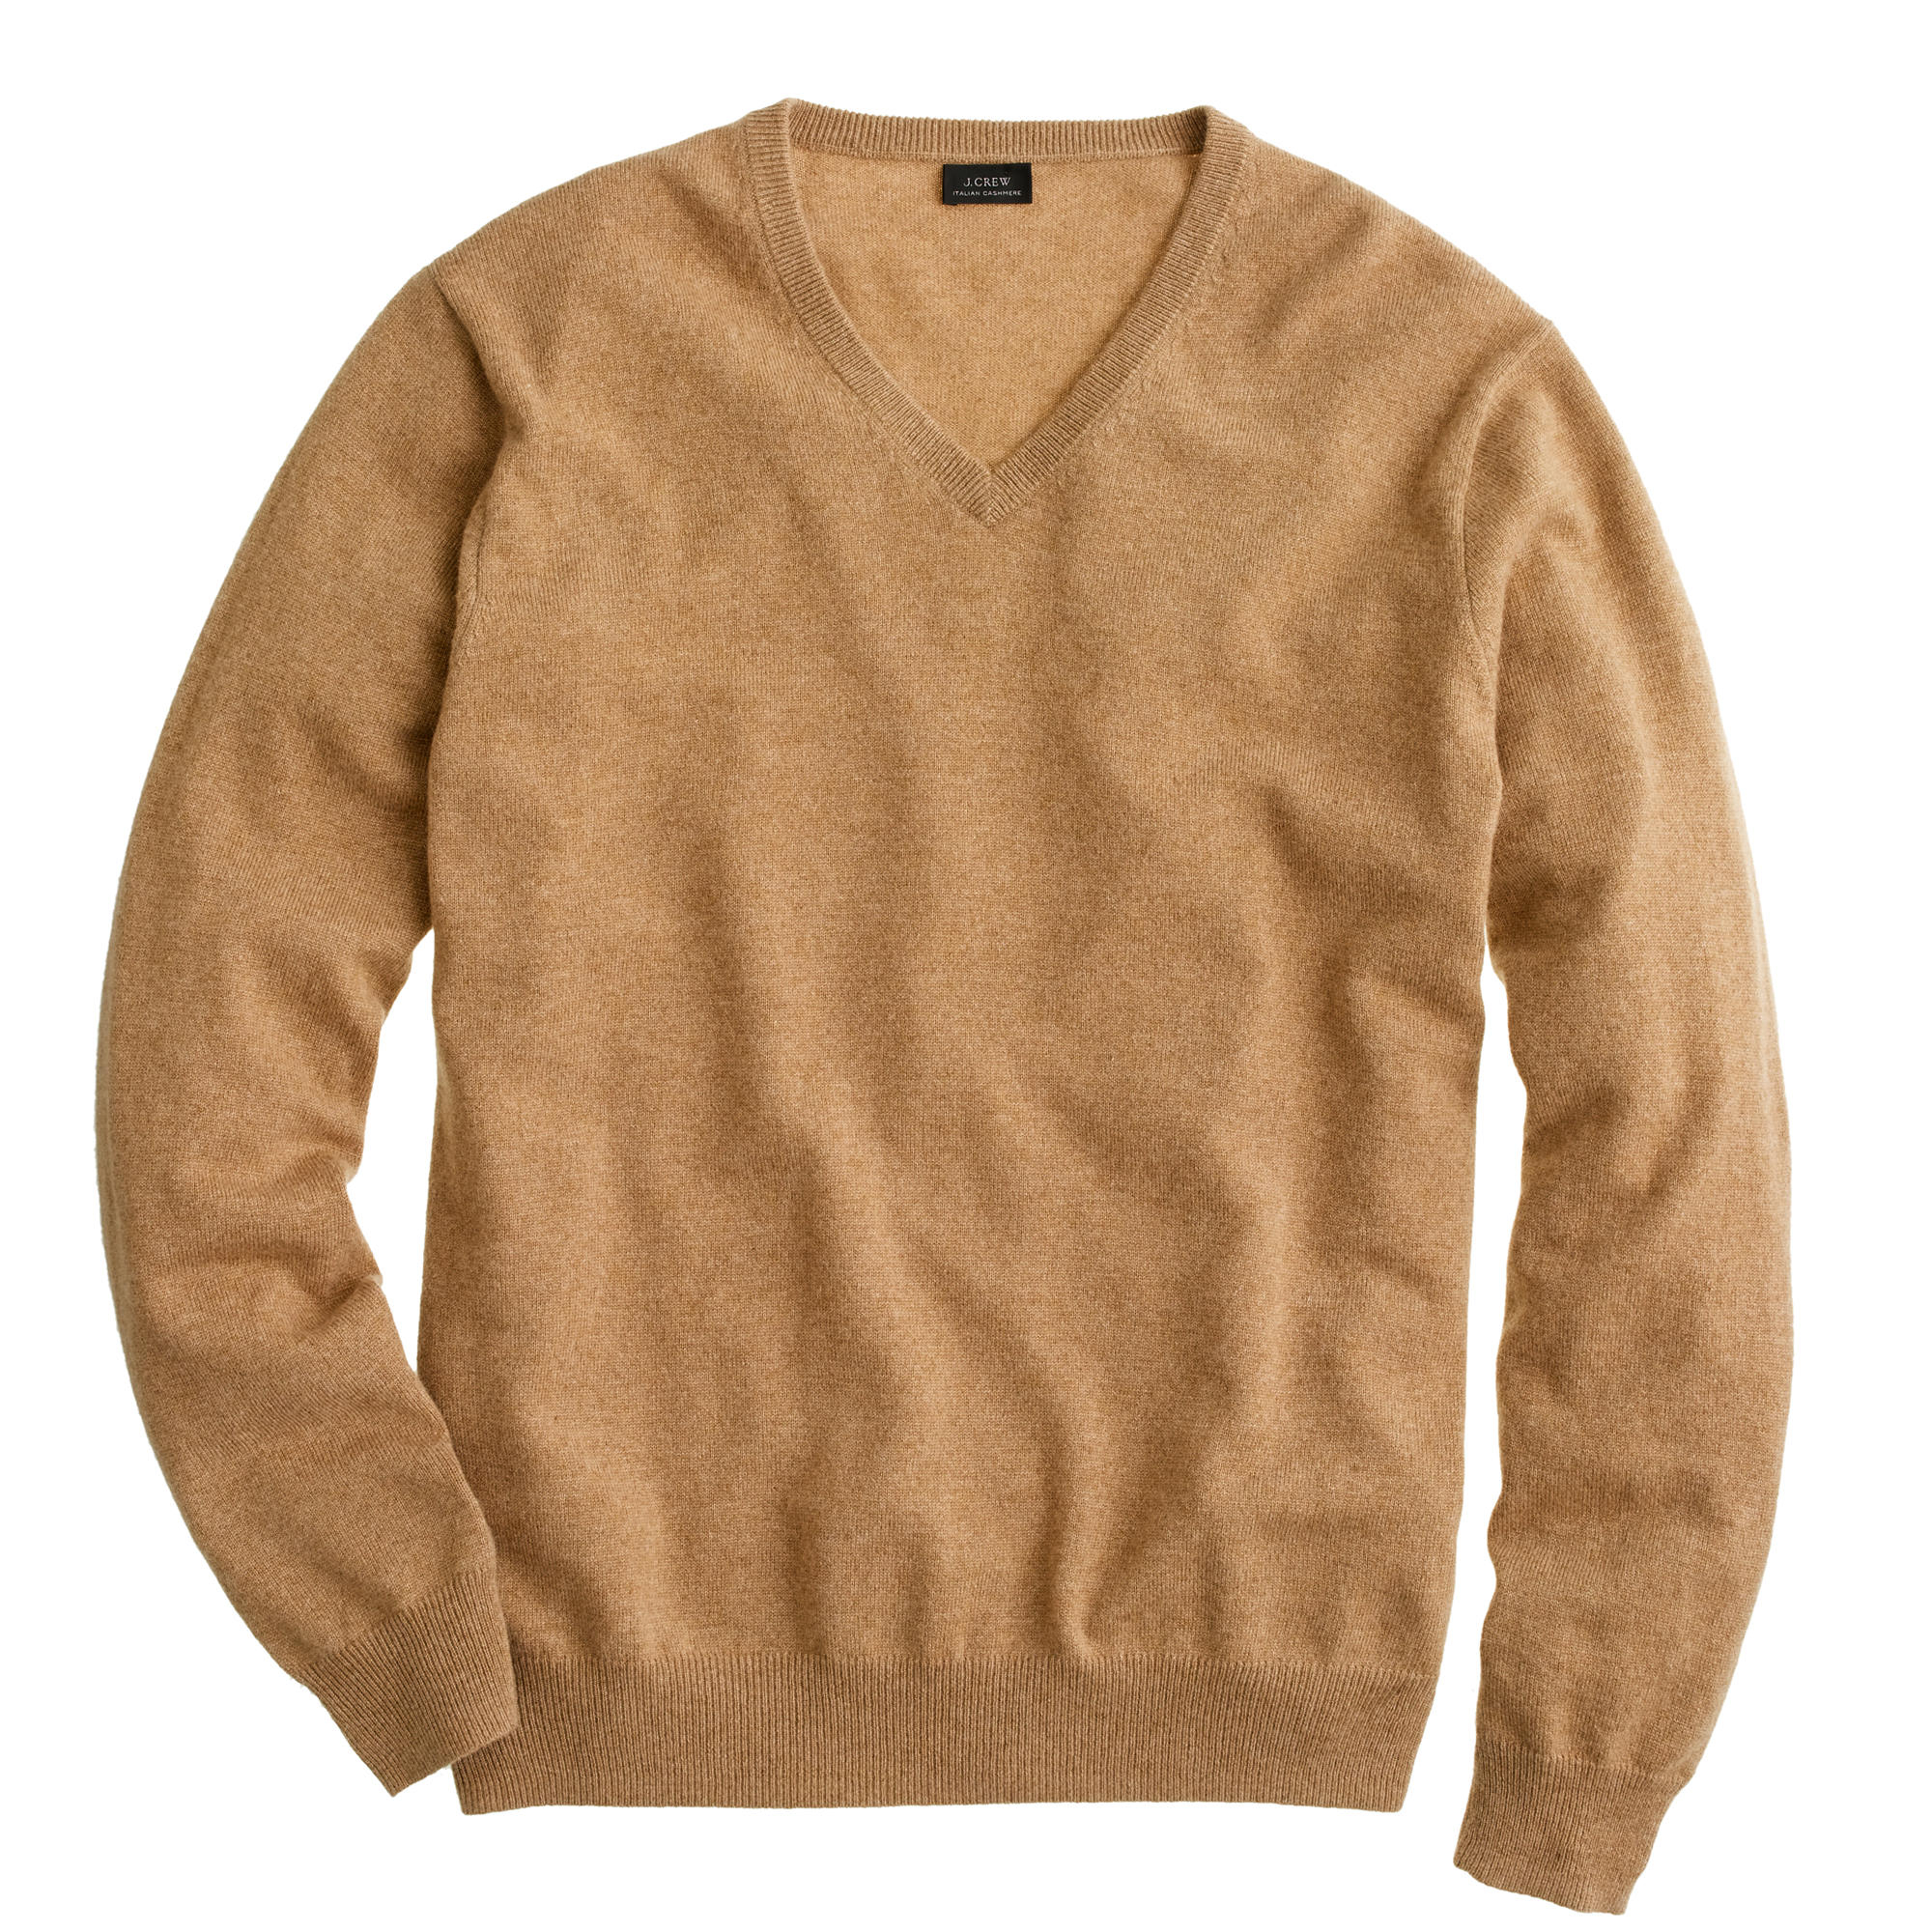 % Cashmere Sweaters for Men. A sweater is a garment made to cover a man's arms and torso. However, the style, design and sweater material are what makes a cashmere sweater .